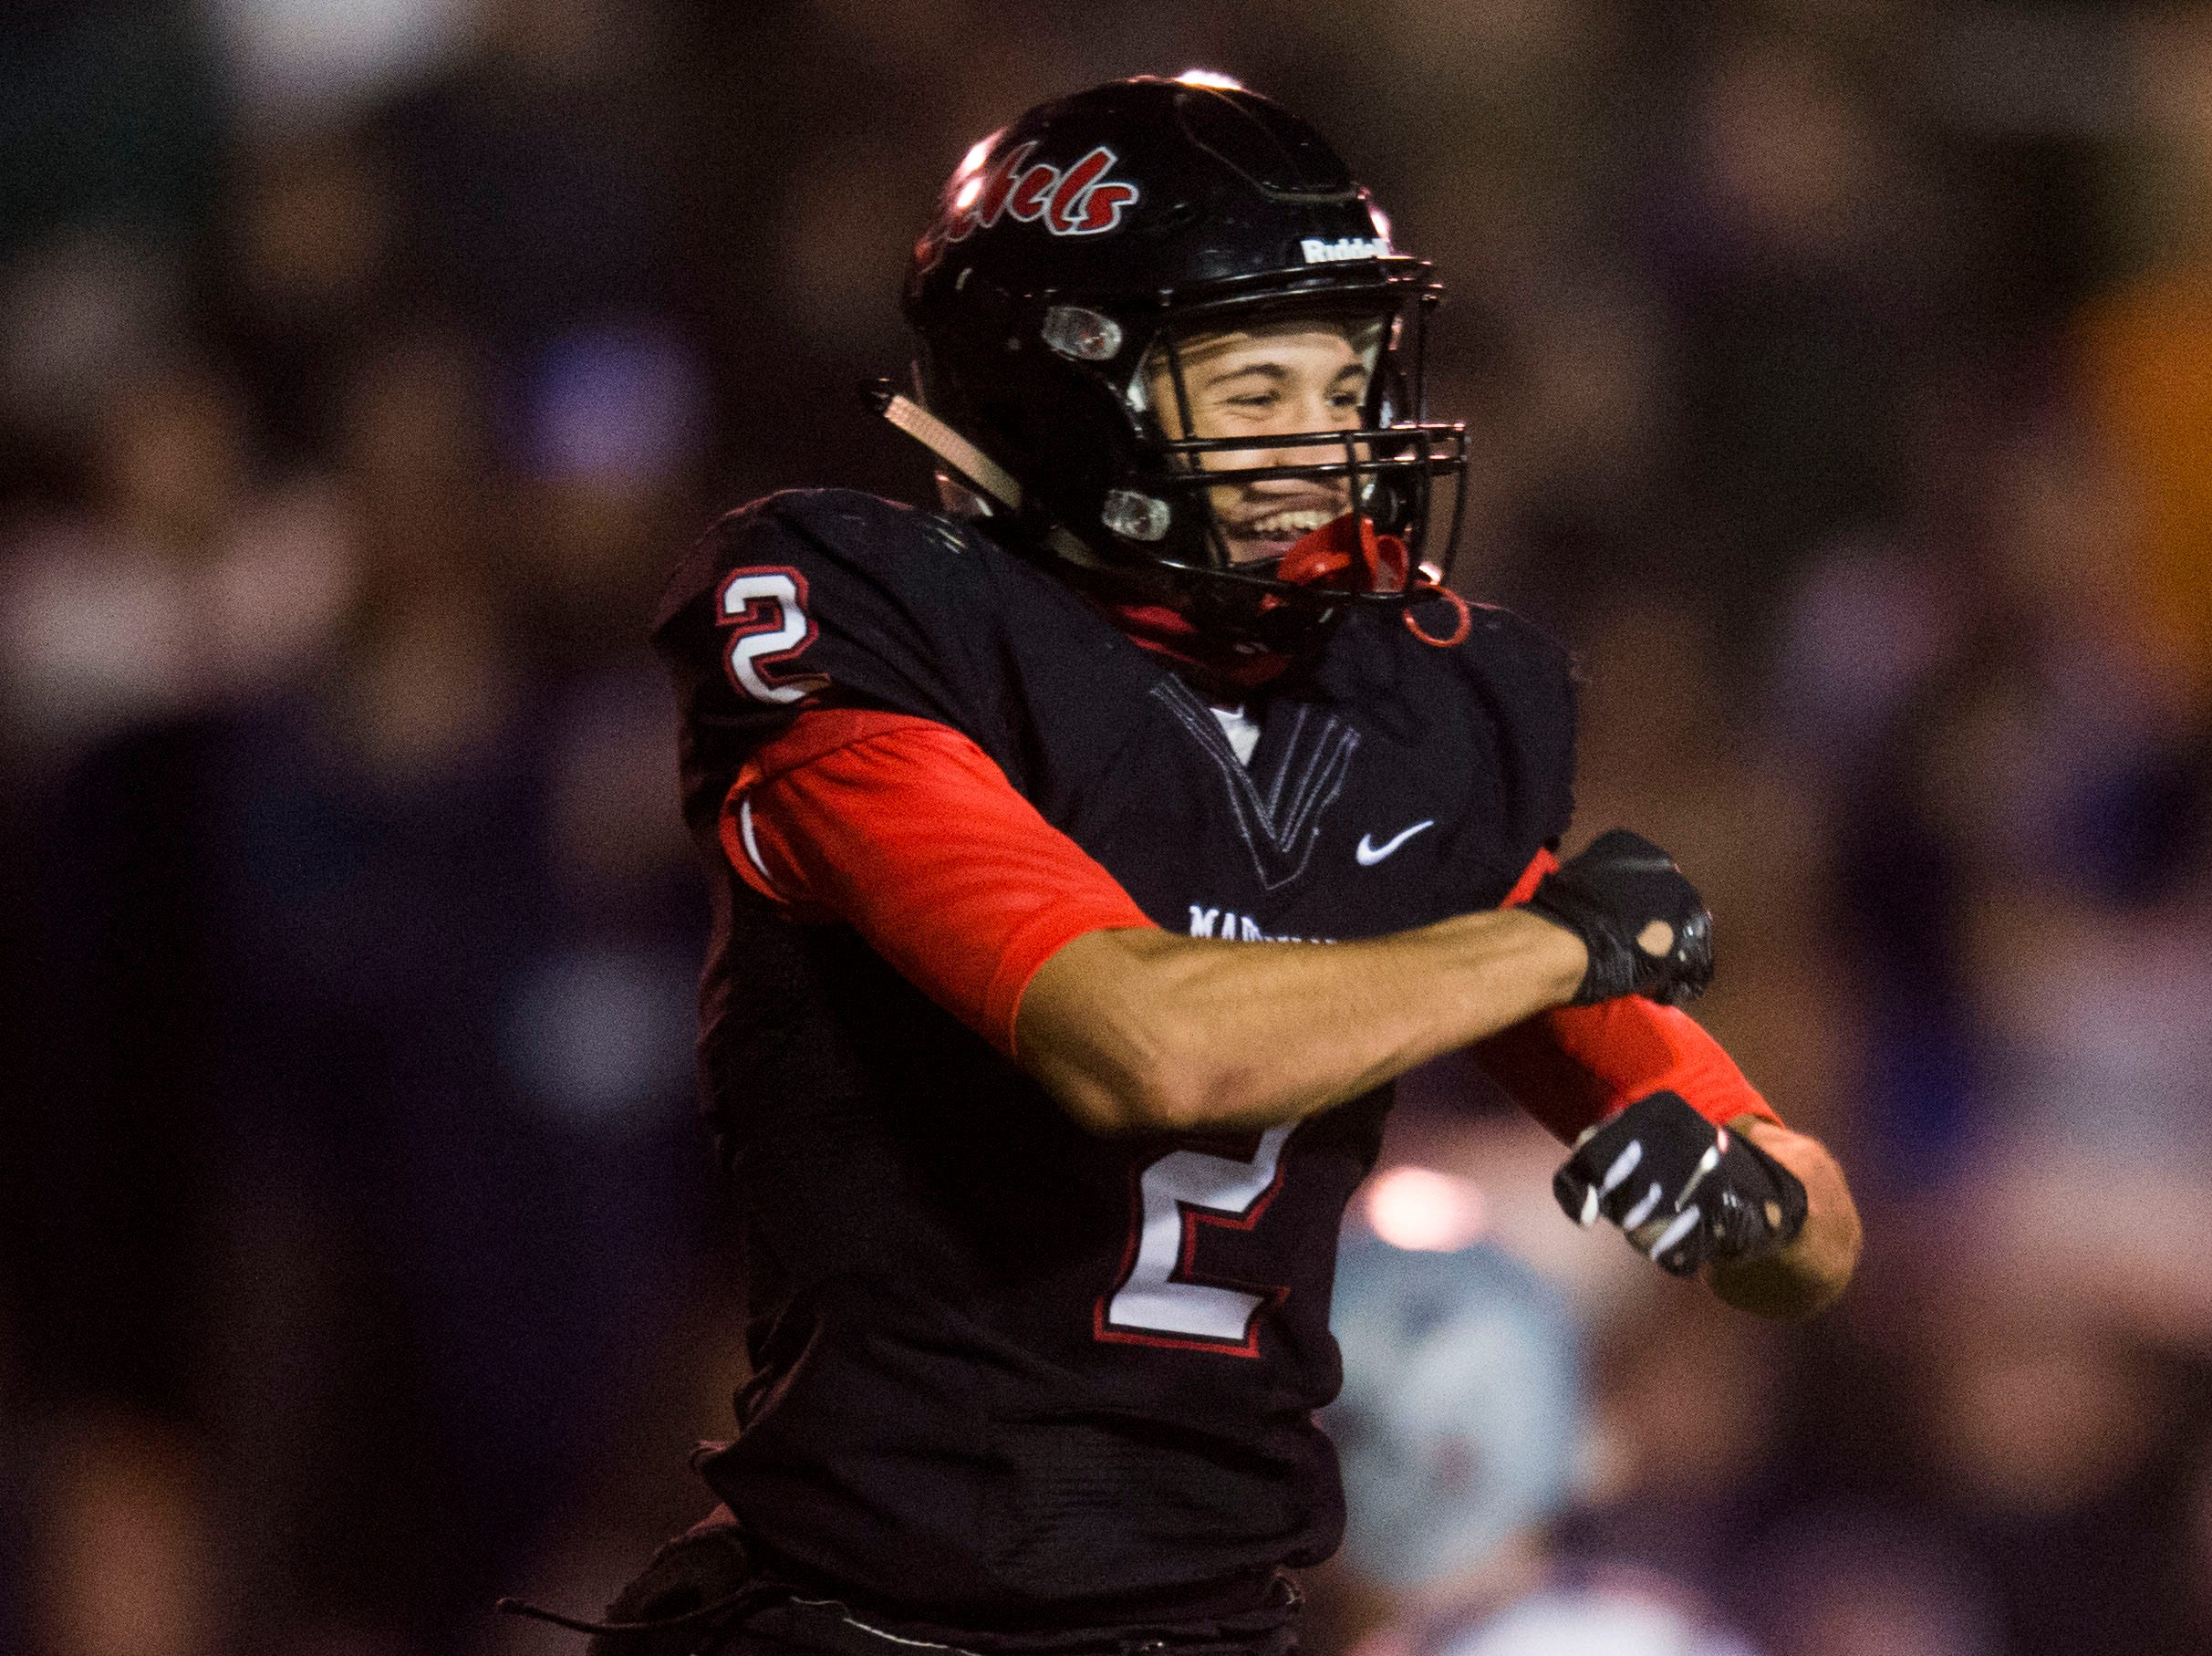 Maryville's Ashton Maples (2) celebrates a touchdown during a 6A quarterfinal game between Maryville and Farragut at Maryville Friday, Nov. 16, 2018. Maryville defeated Farragut 26-10.